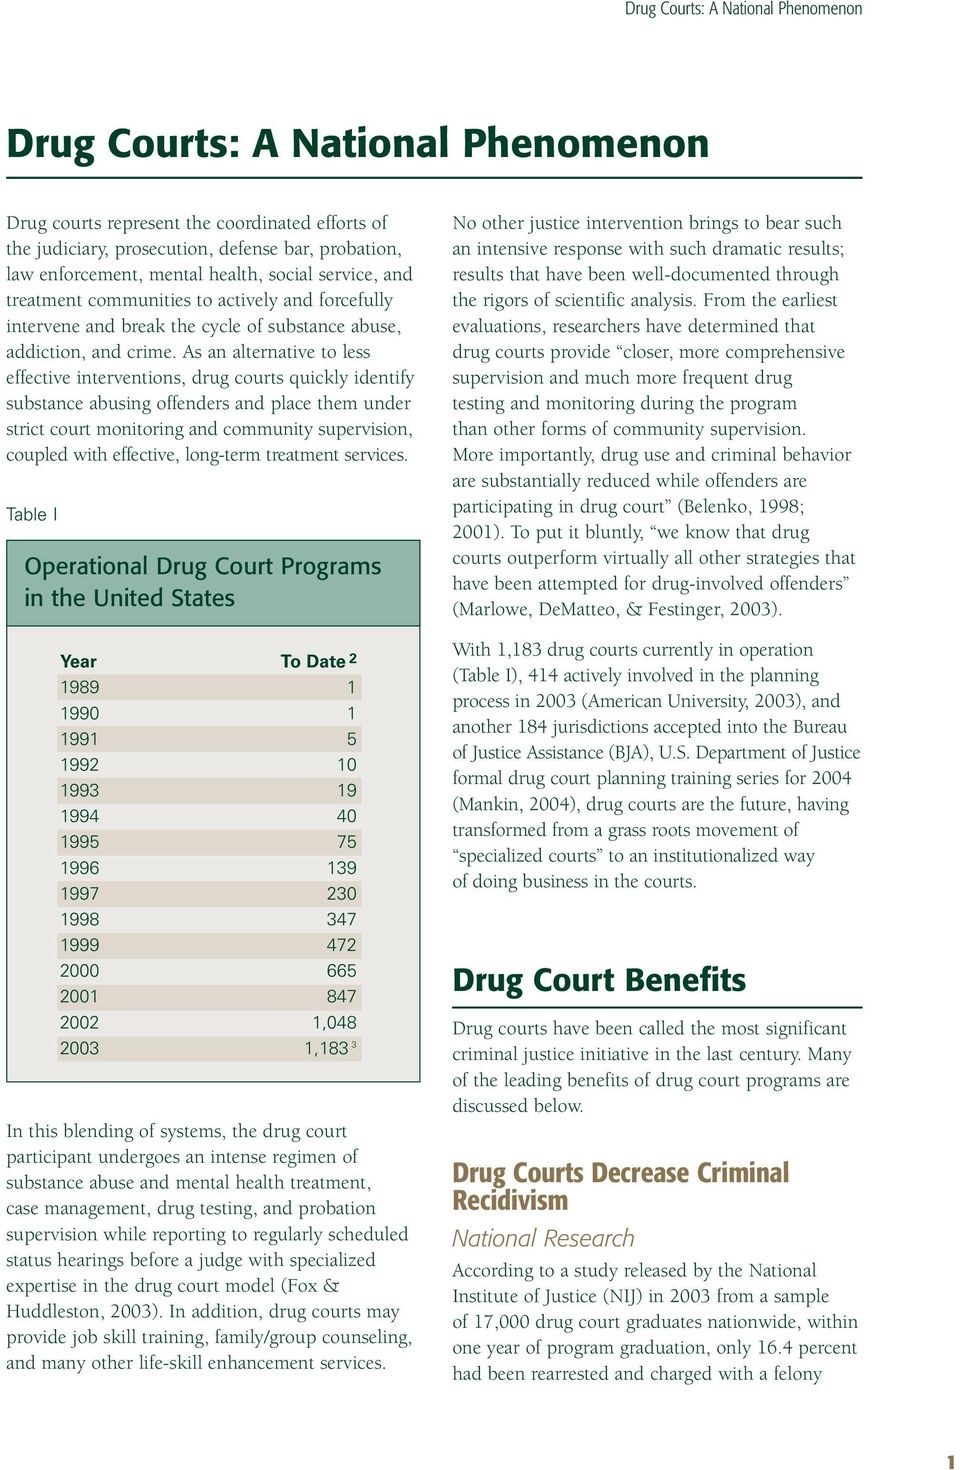 As an alternative to less effective interventions, drug courts quickly identify substance abusing offenders and place them under strict court monitoring and community supervision, coupled with